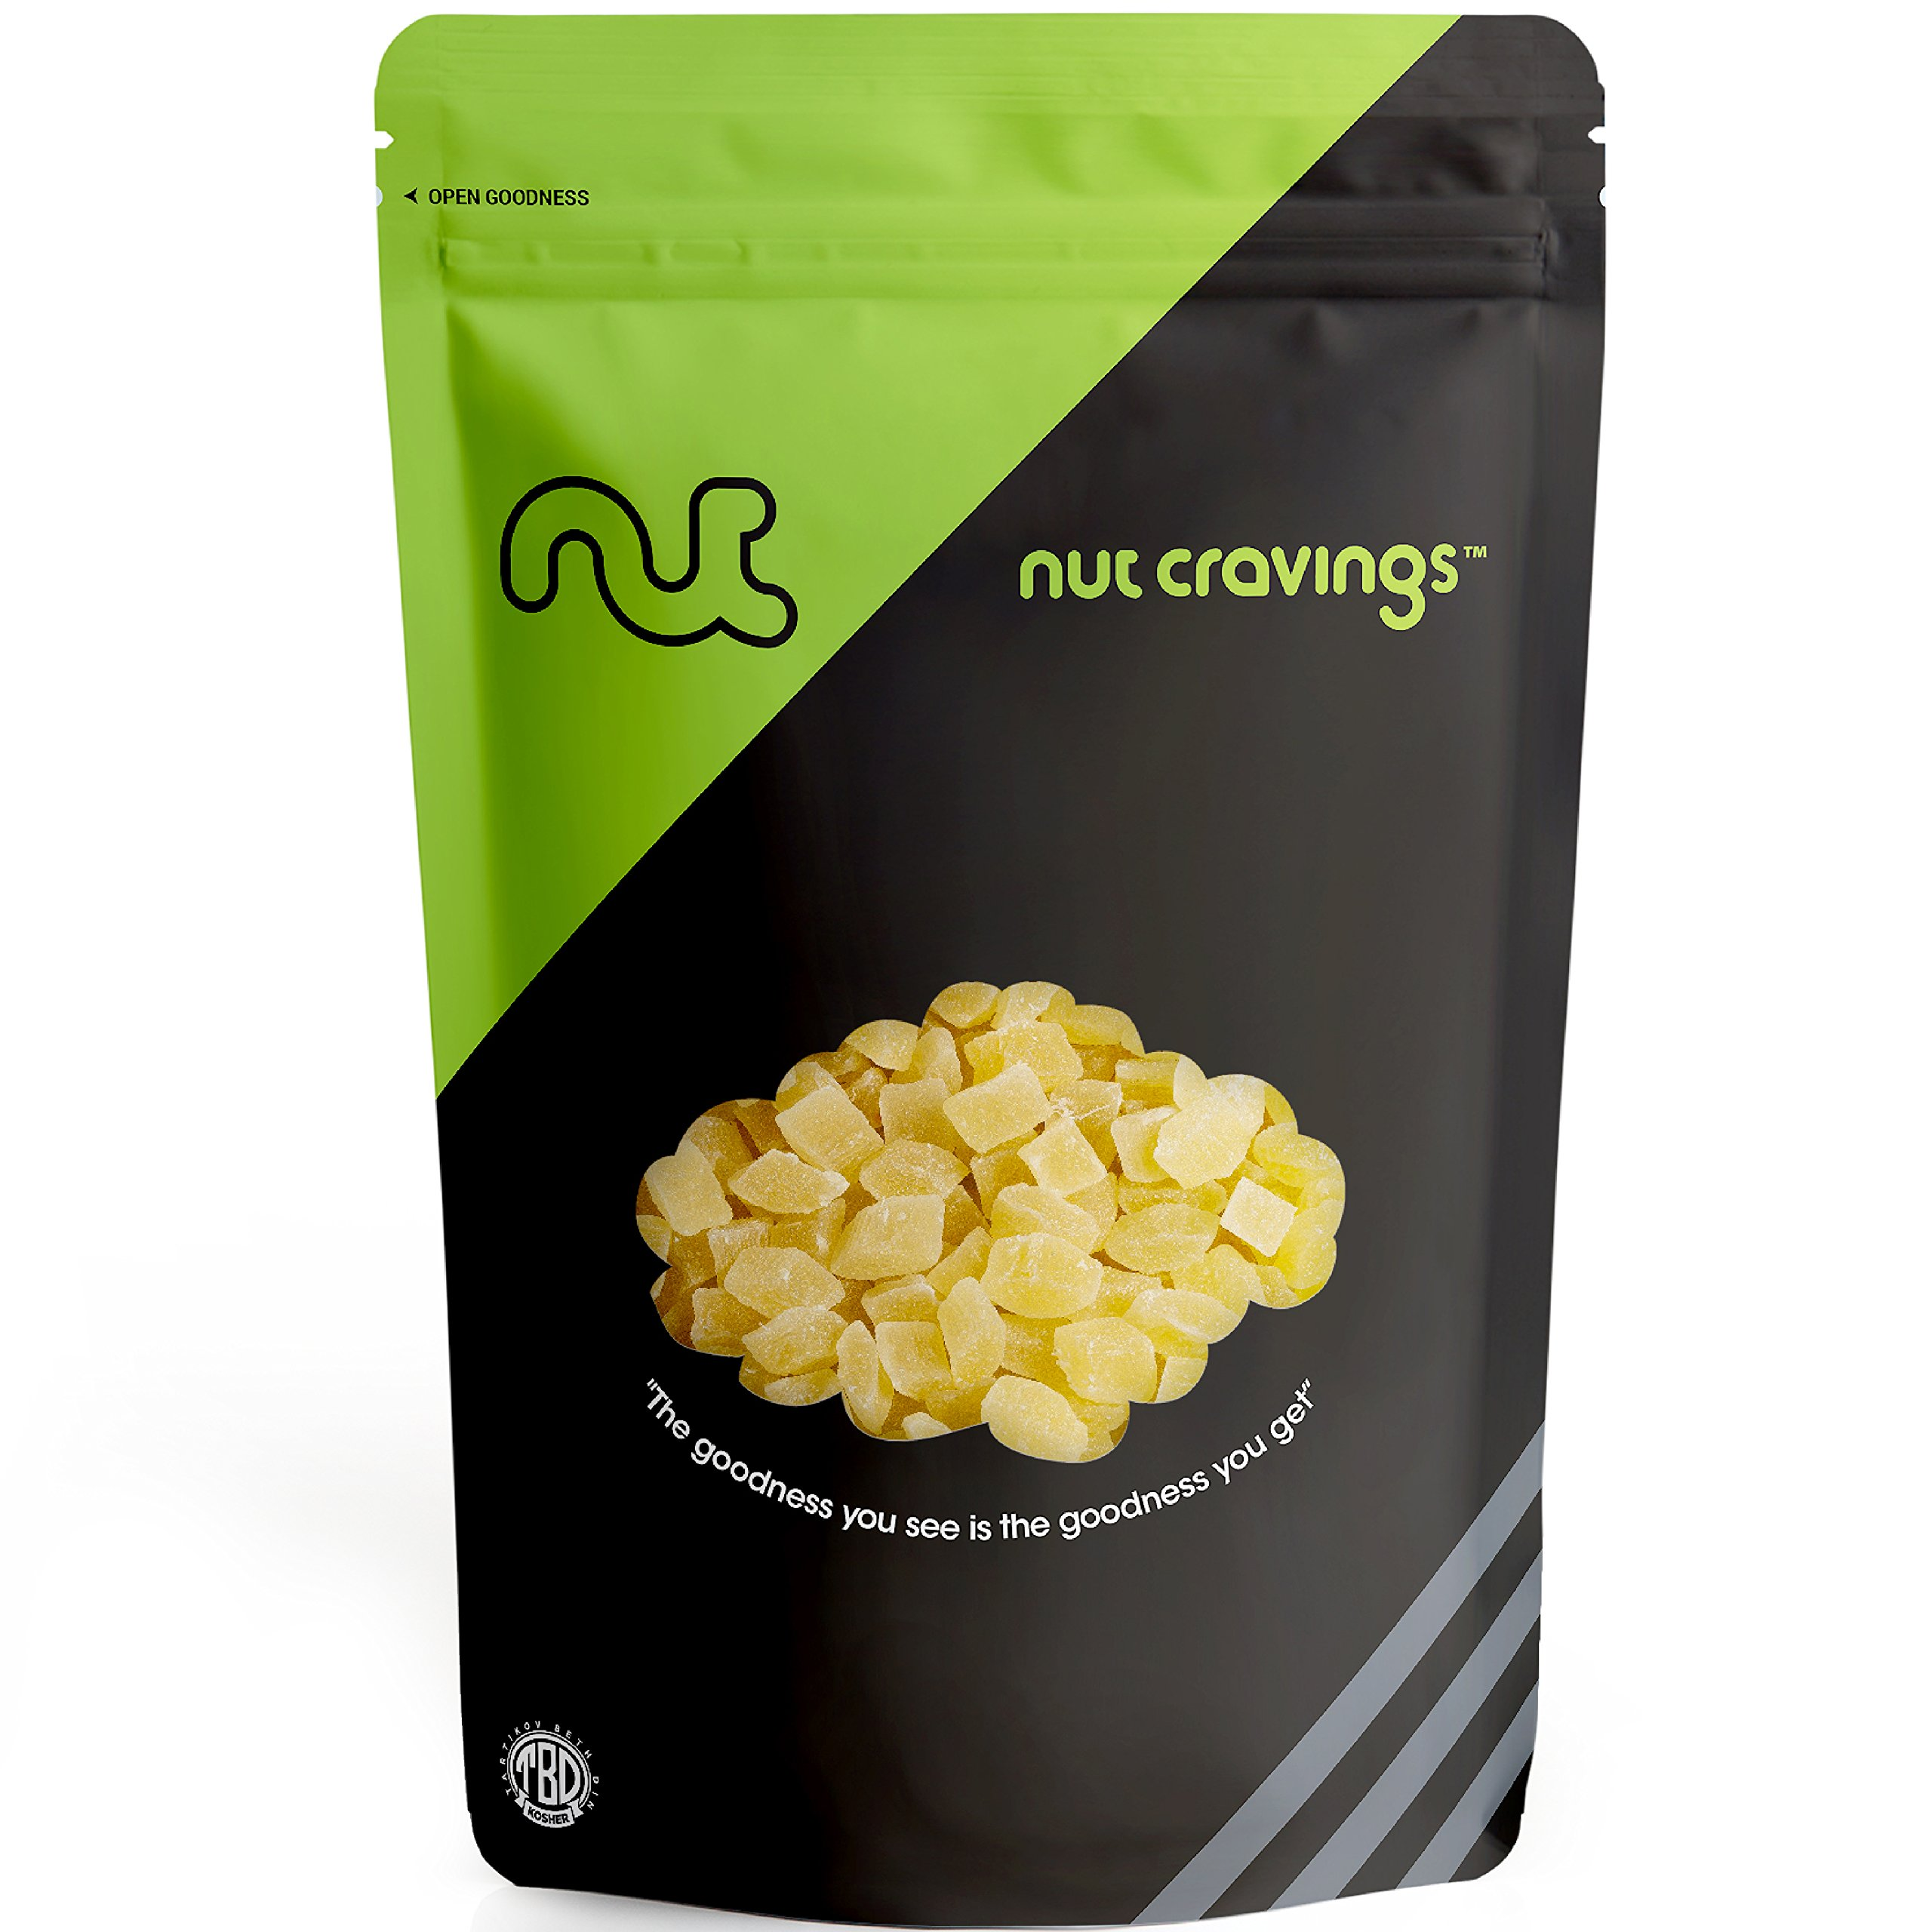 Nut Cravings - Dried Pineapple Chunks - Sweet, Healthy Dehydrated Fruit Snacks with Sugar Added - SAMPLER SIZE by Nut Cravings